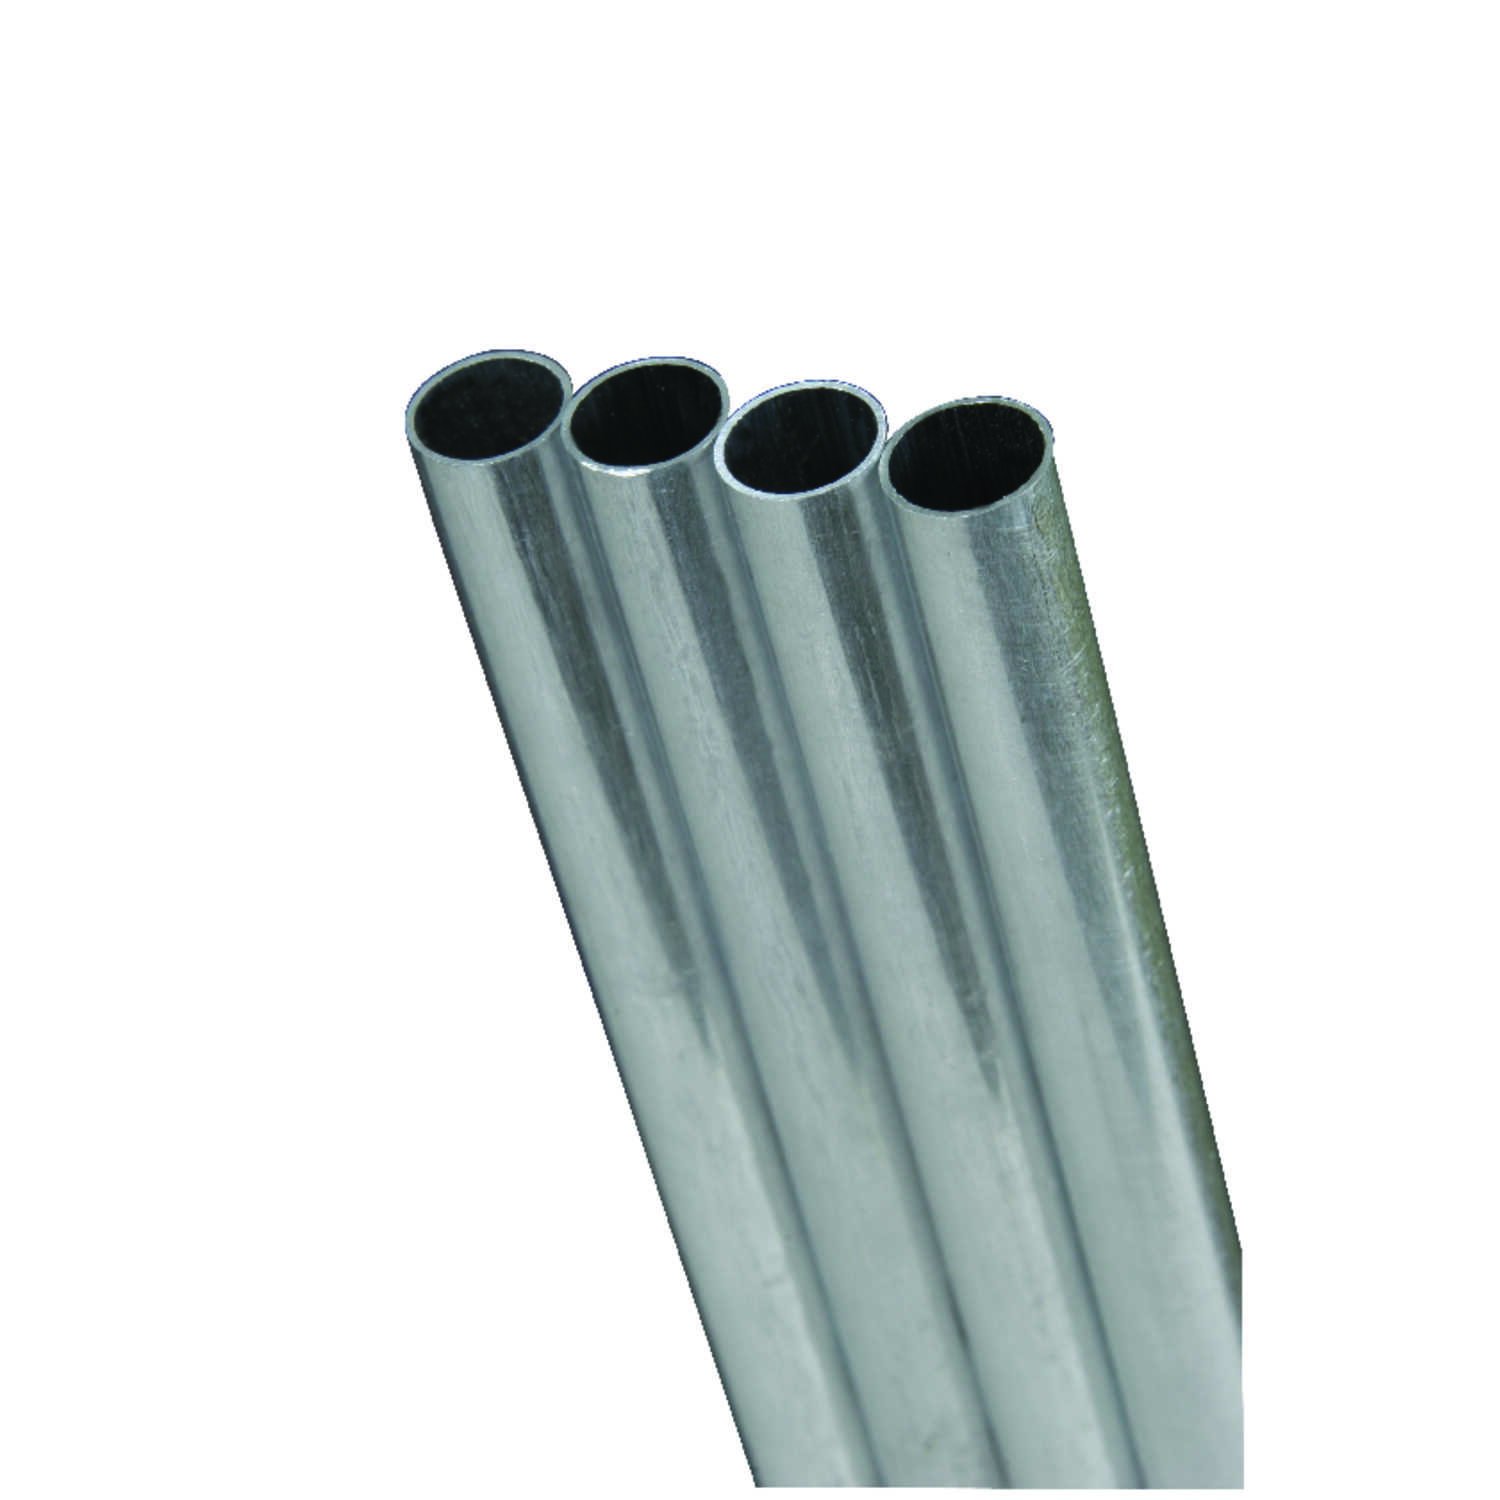 K&S  1/4 in. Dia. x 1 ft. L Stainless Steel Tube  1 each